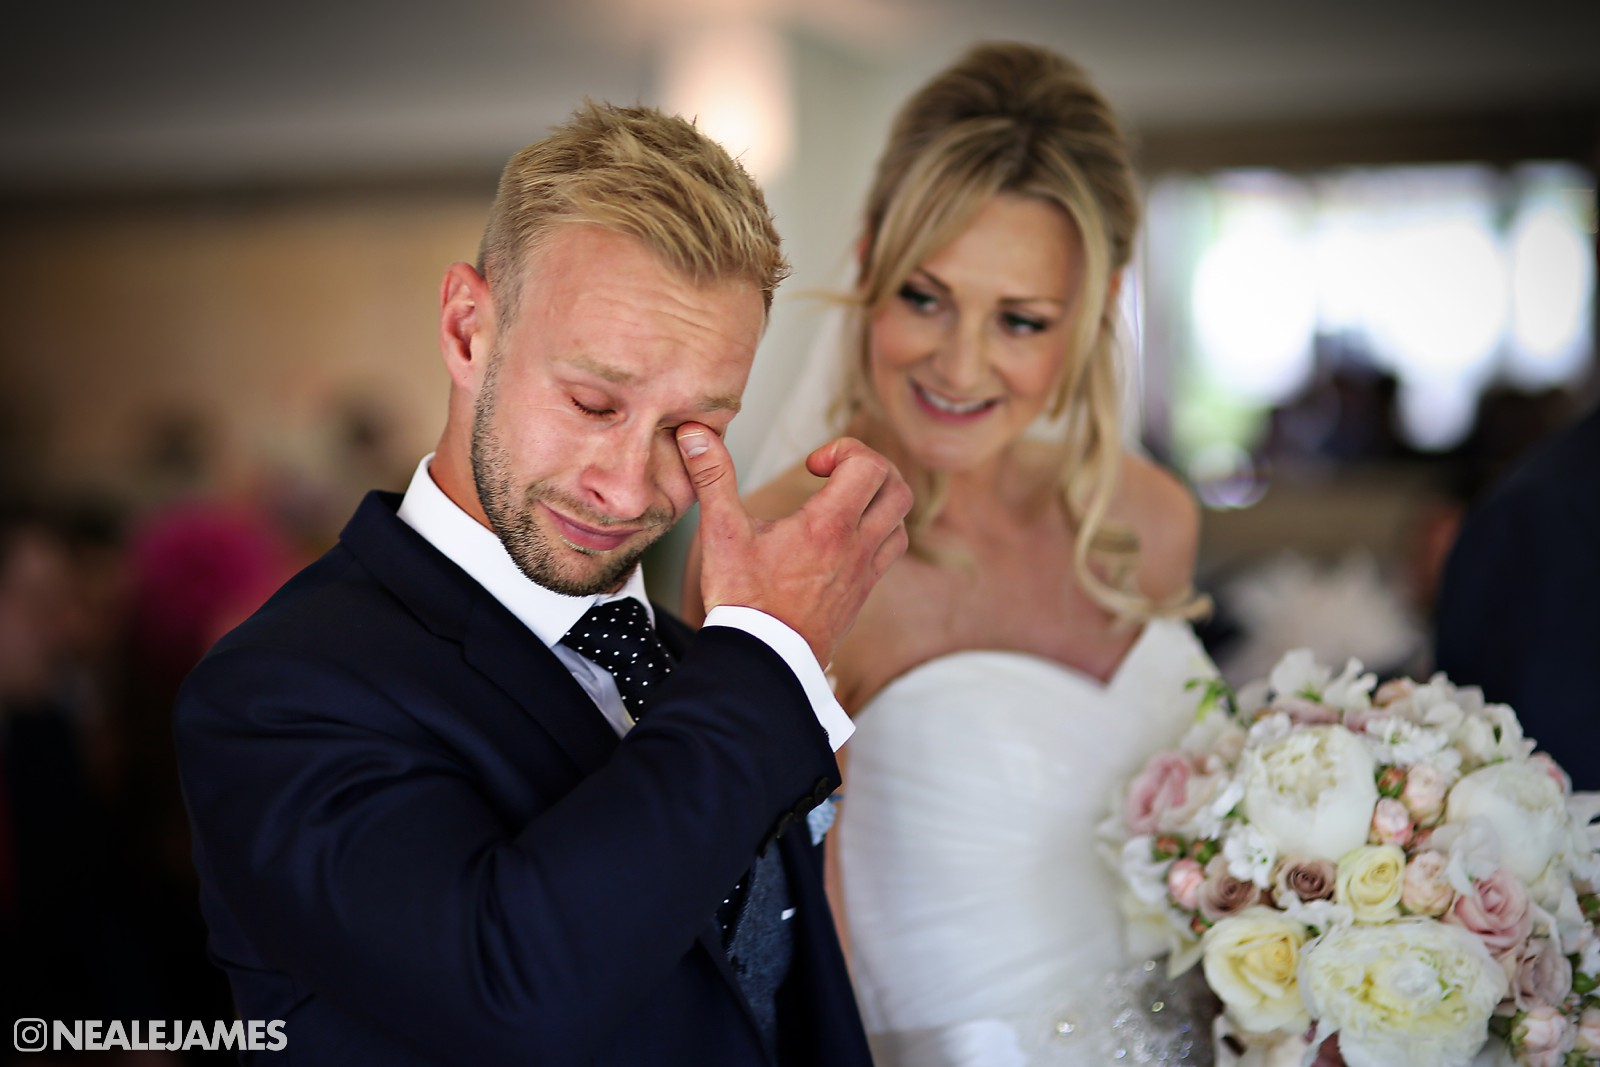 A groom wipes a tear from his eye in this picture, as his new wife watches on